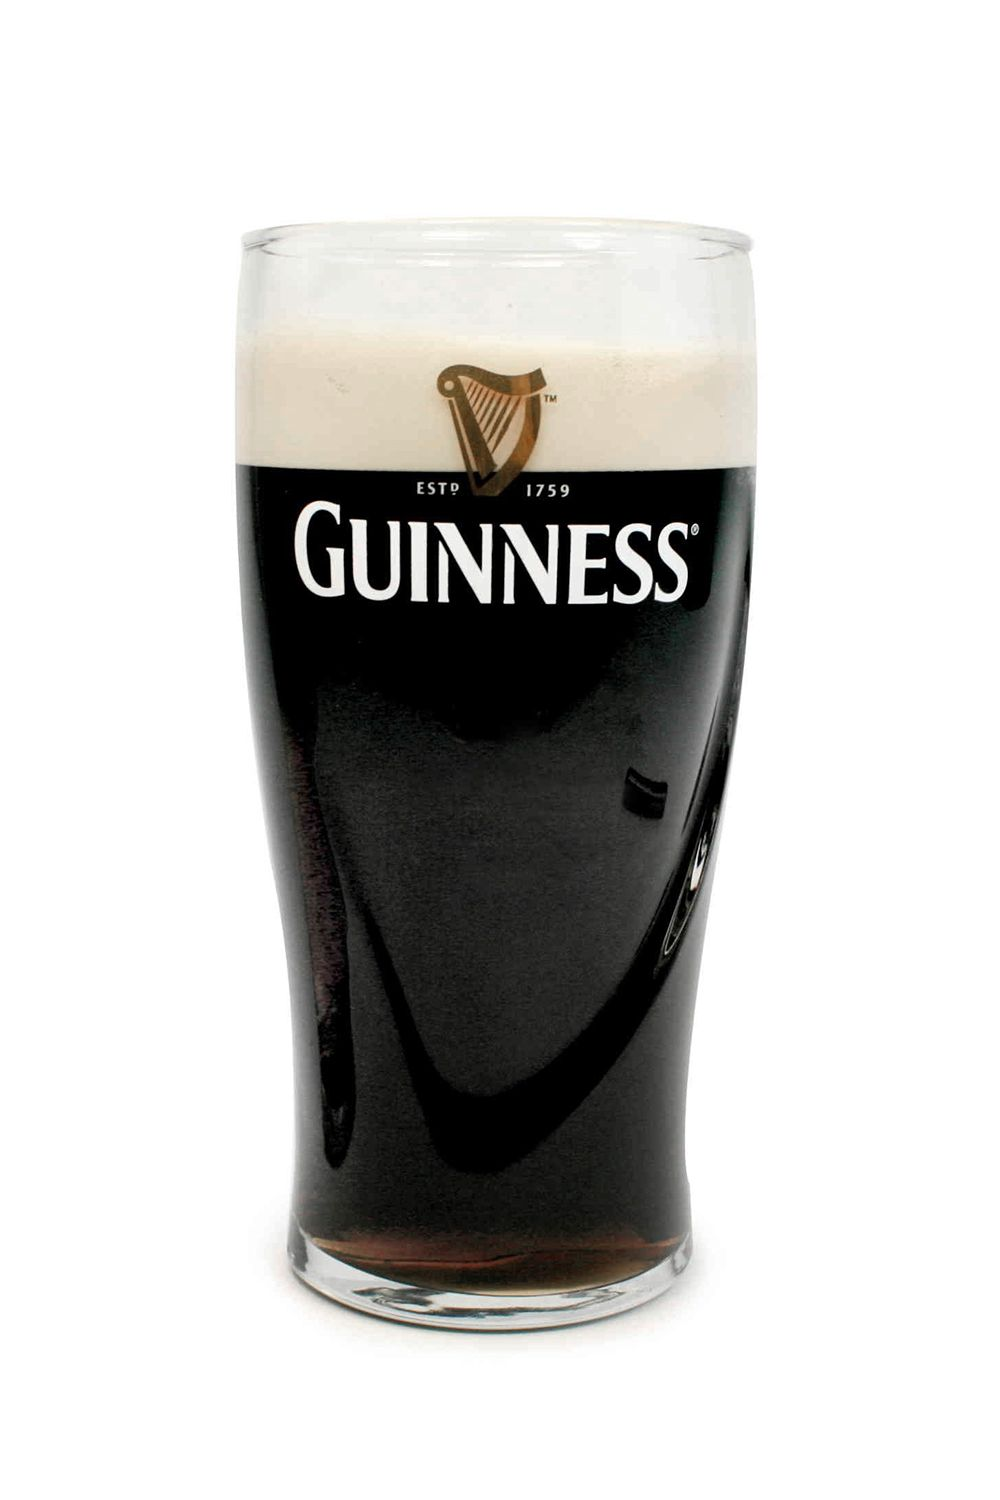 """<p>Every male relative's favorite drink also happens to be a great waist-trimmer. The bitter coffee and caramel mix never gets old.</p><p><strong data-redactor-tag=""""strong"""">Guinness Draught (4.2% ABV), 125 calories</strong></p>"""